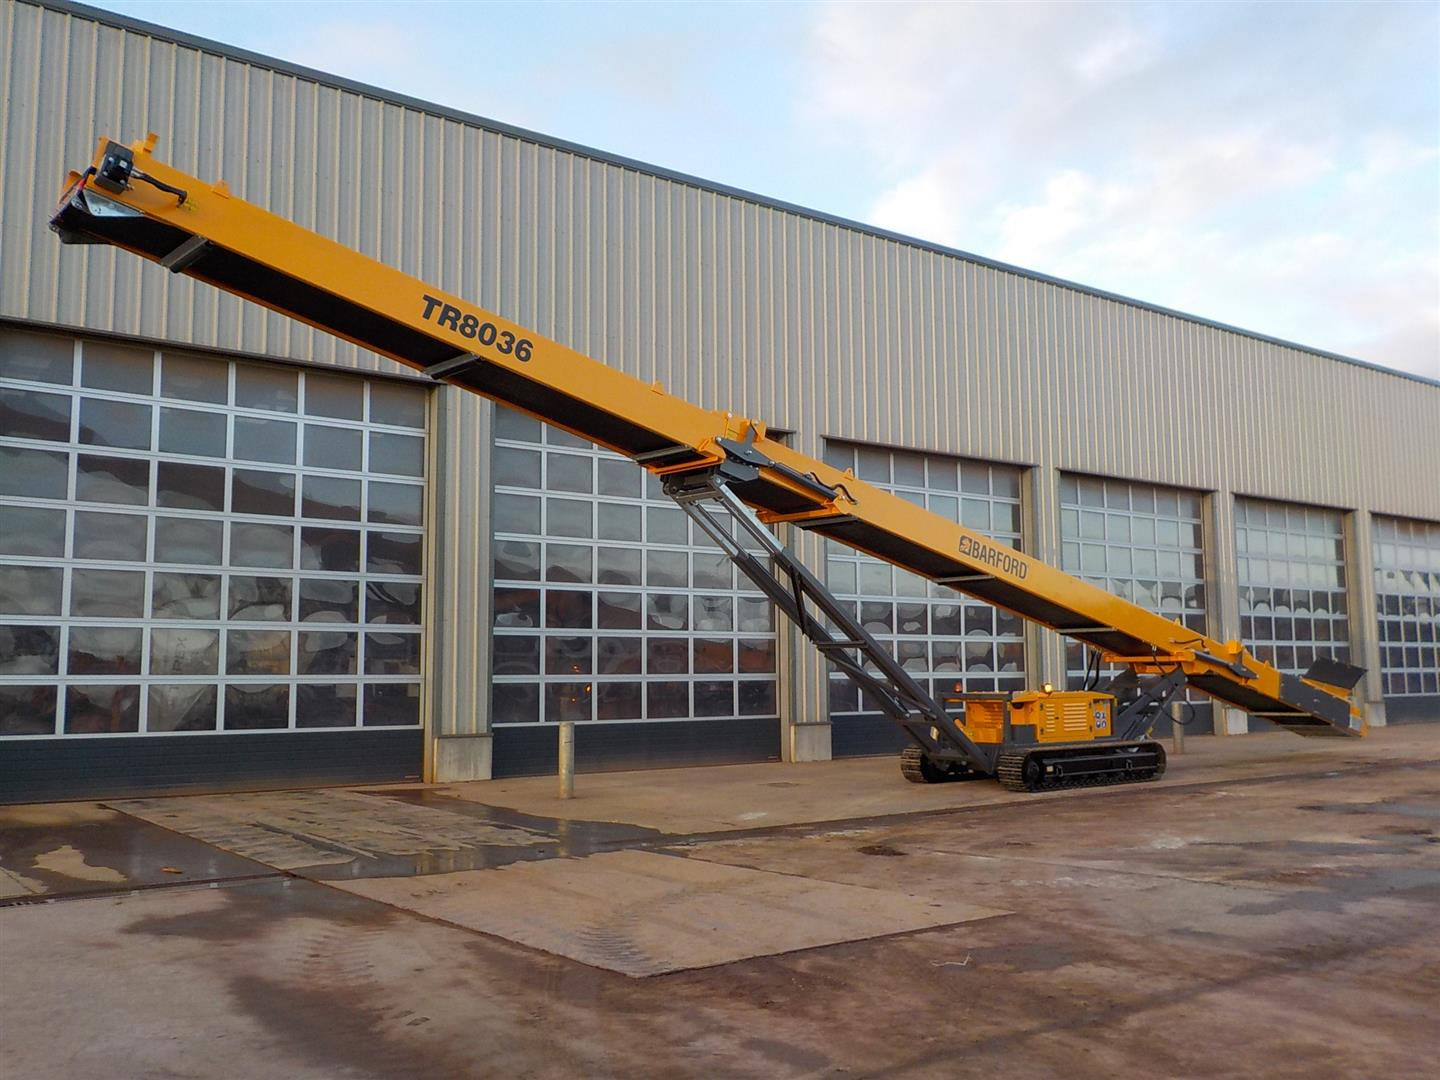 Barford TR8036 Tracked Conveyor